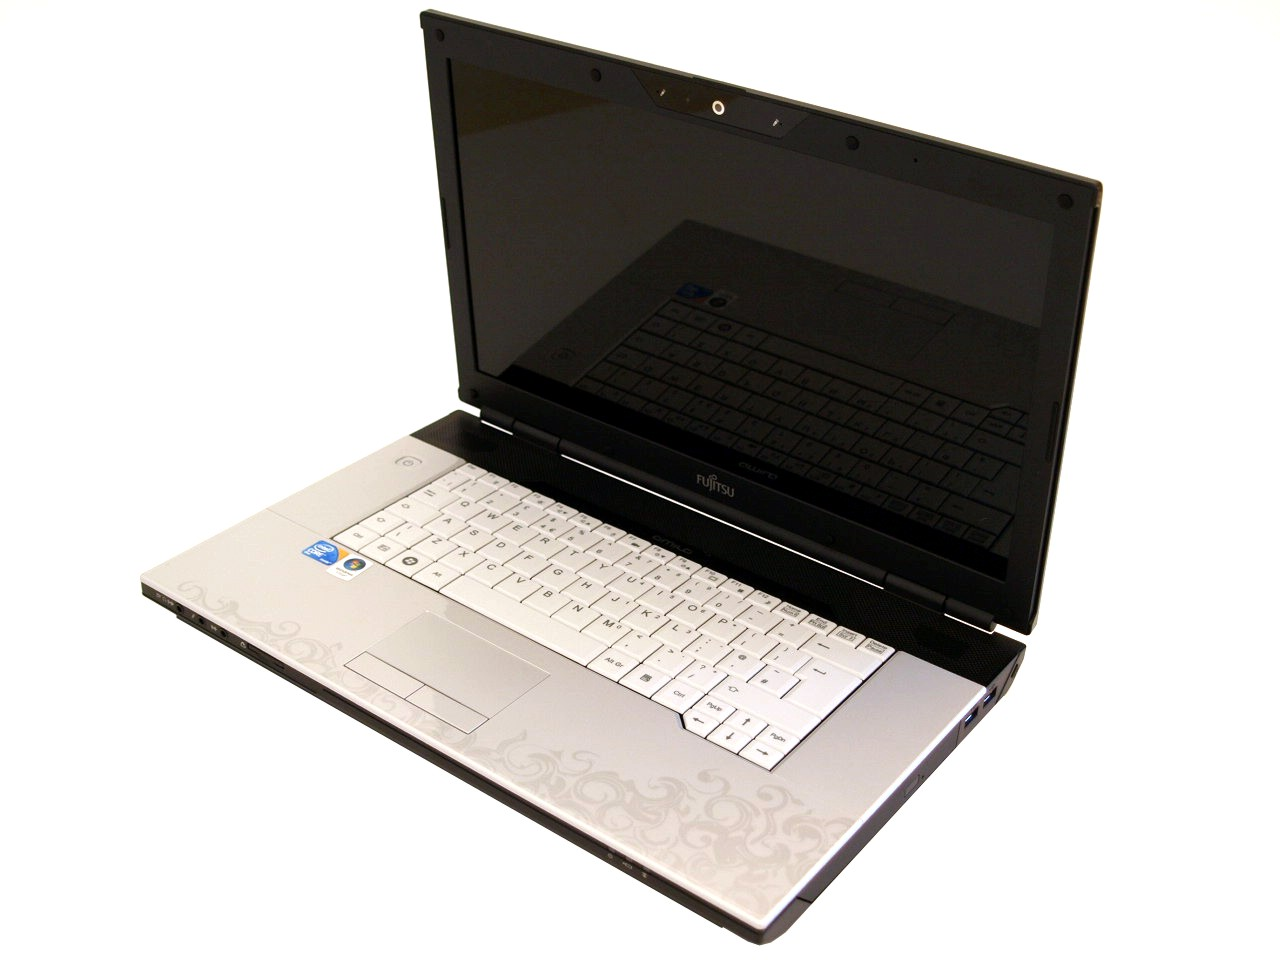 FUJITSU SIEMENS AMILO NOTEBOOK PI 3540 WINDOWS 8.1 DRIVERS DOWNLOAD